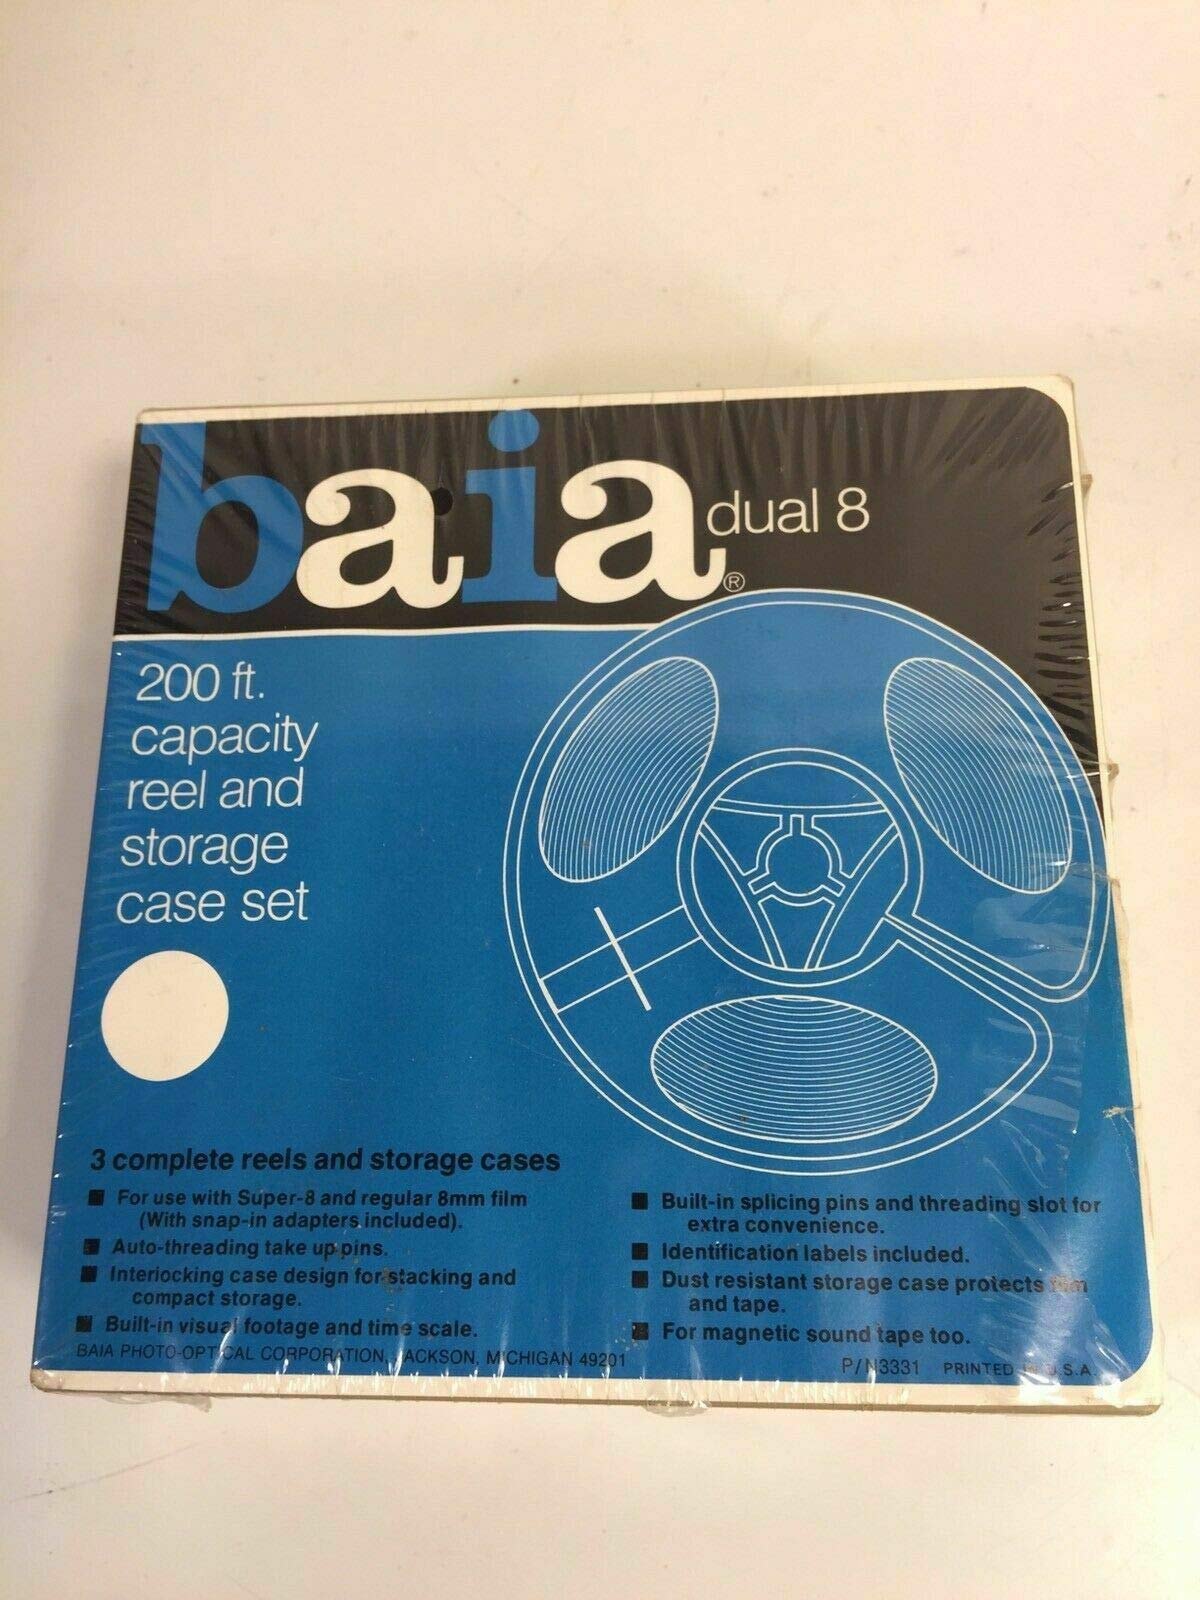 Baia Dual 8 200 Ft Reel with Storage Case Set of Three 3 Pack Sealed in Package by PHOENIX FINDS TREASURES